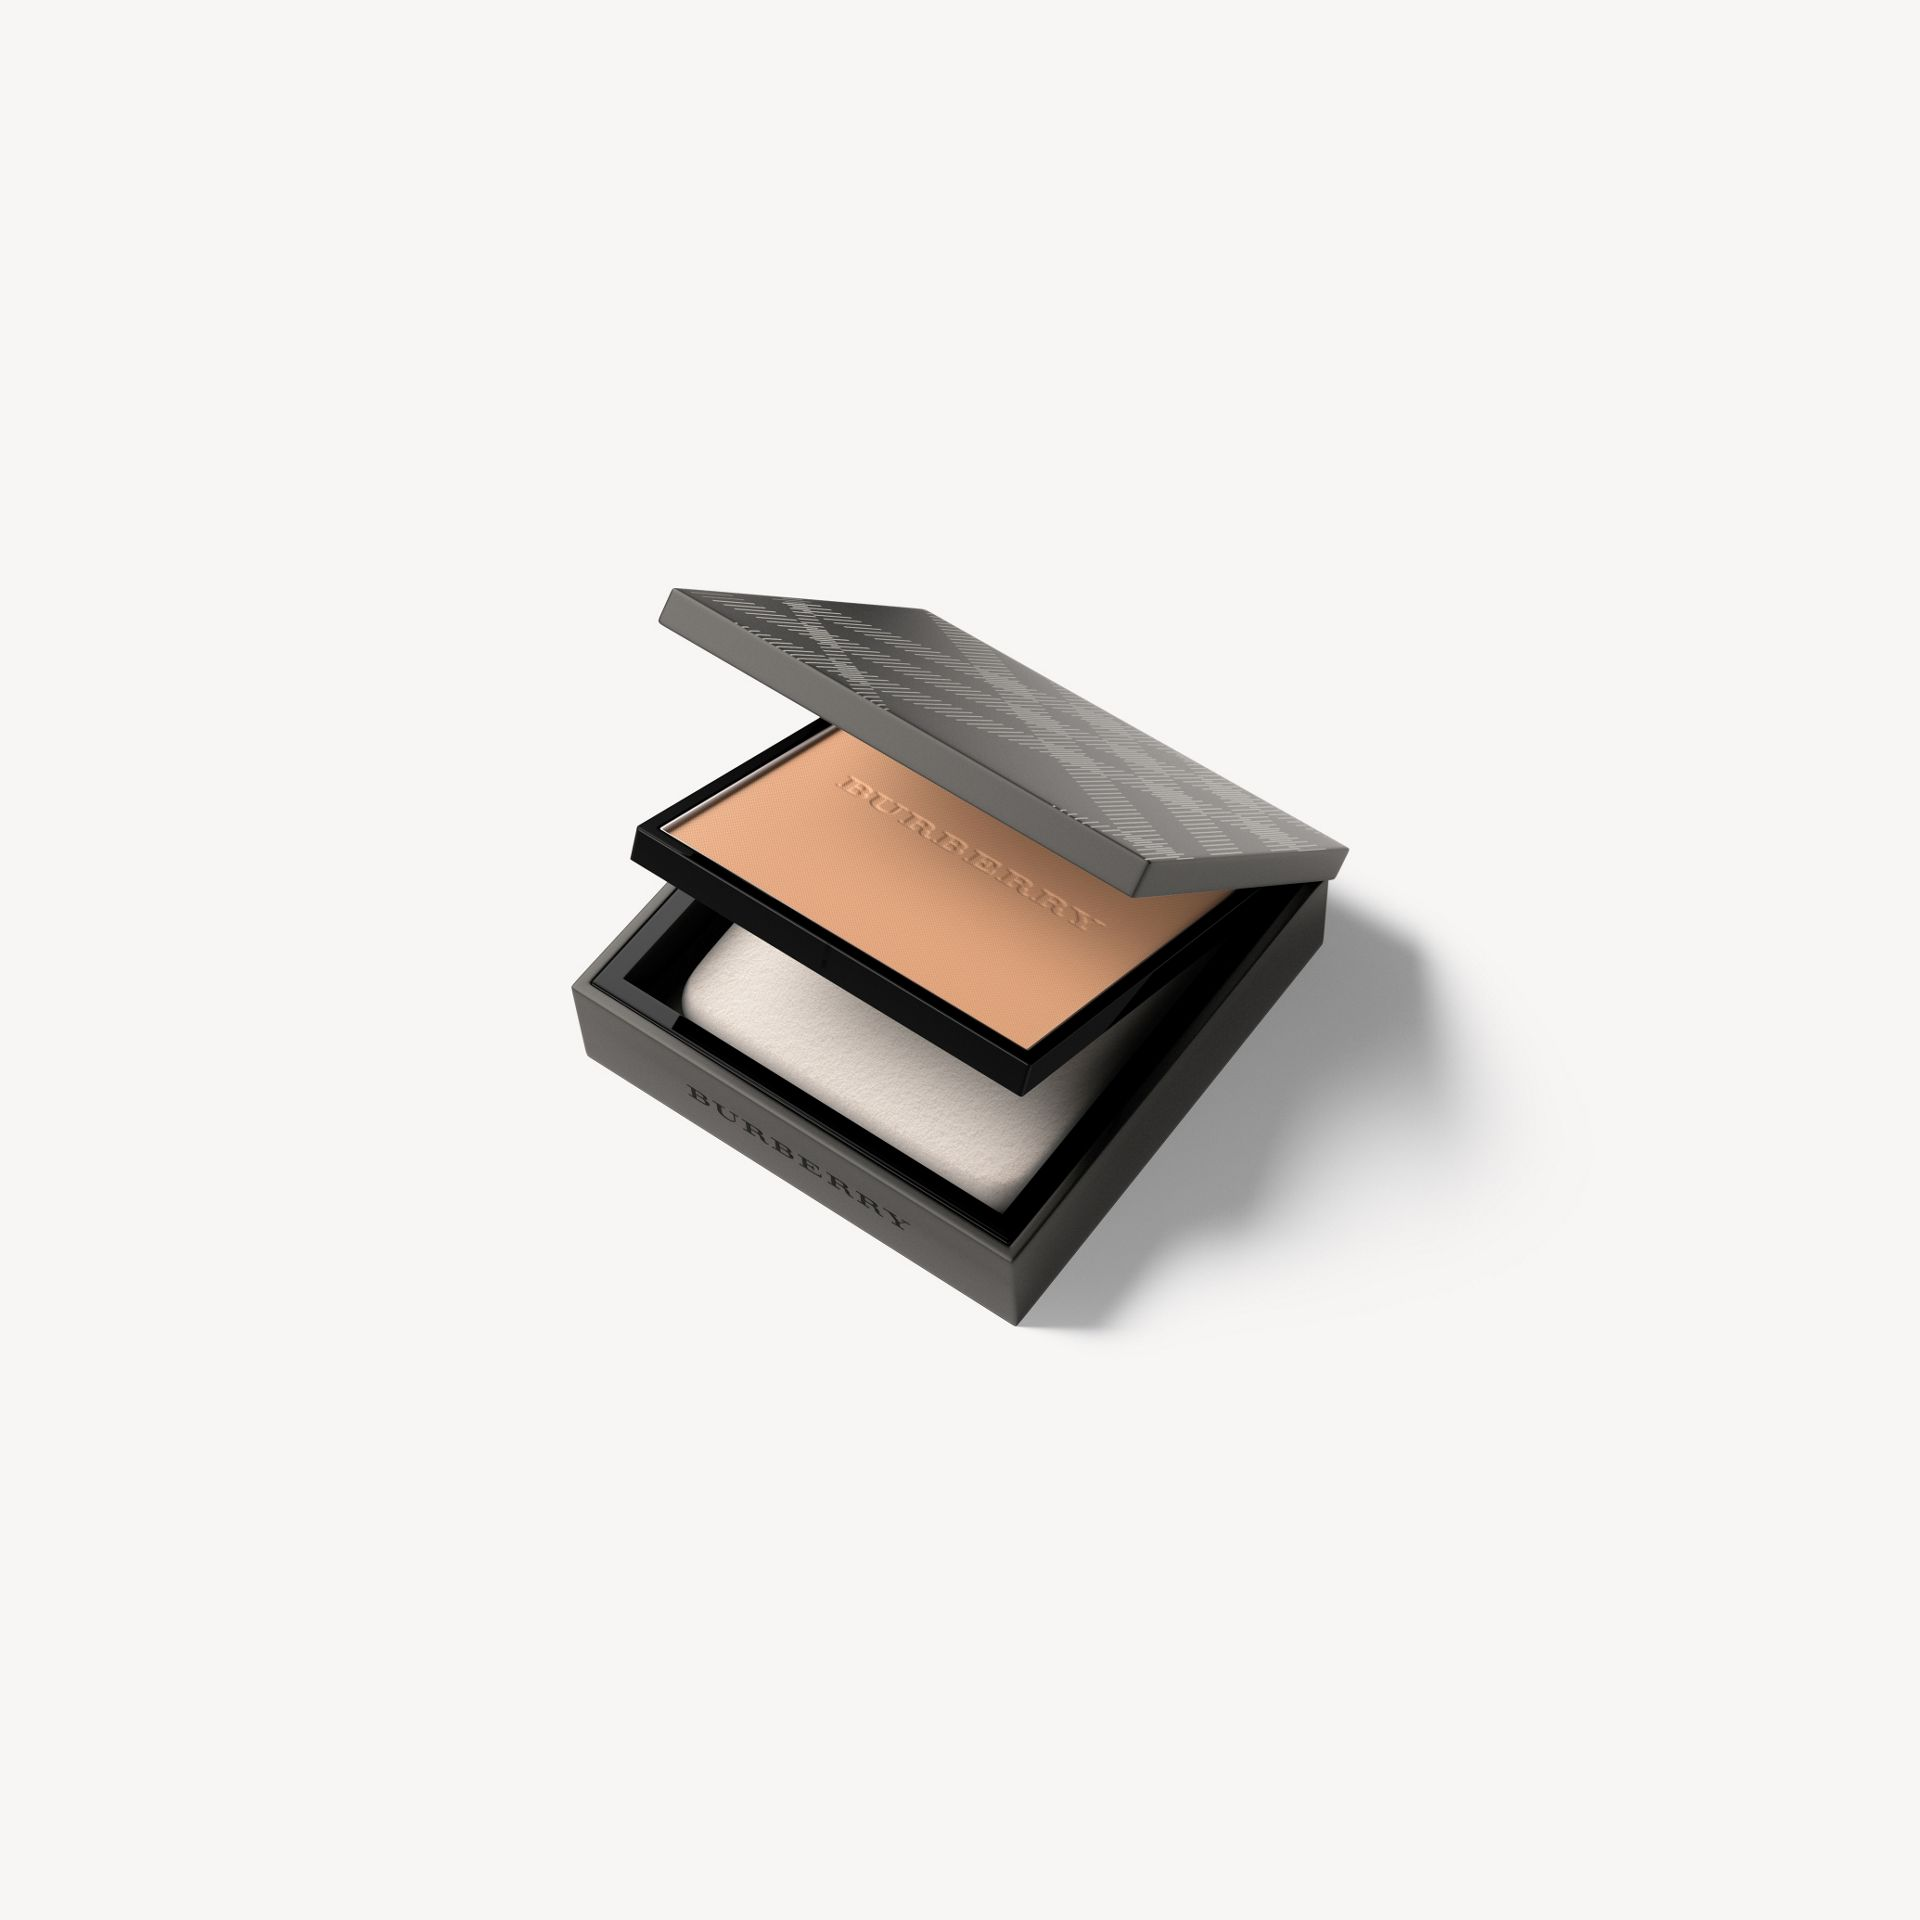 Burberry Cashmere Compact - Honey No.32 - immagine della galleria 1